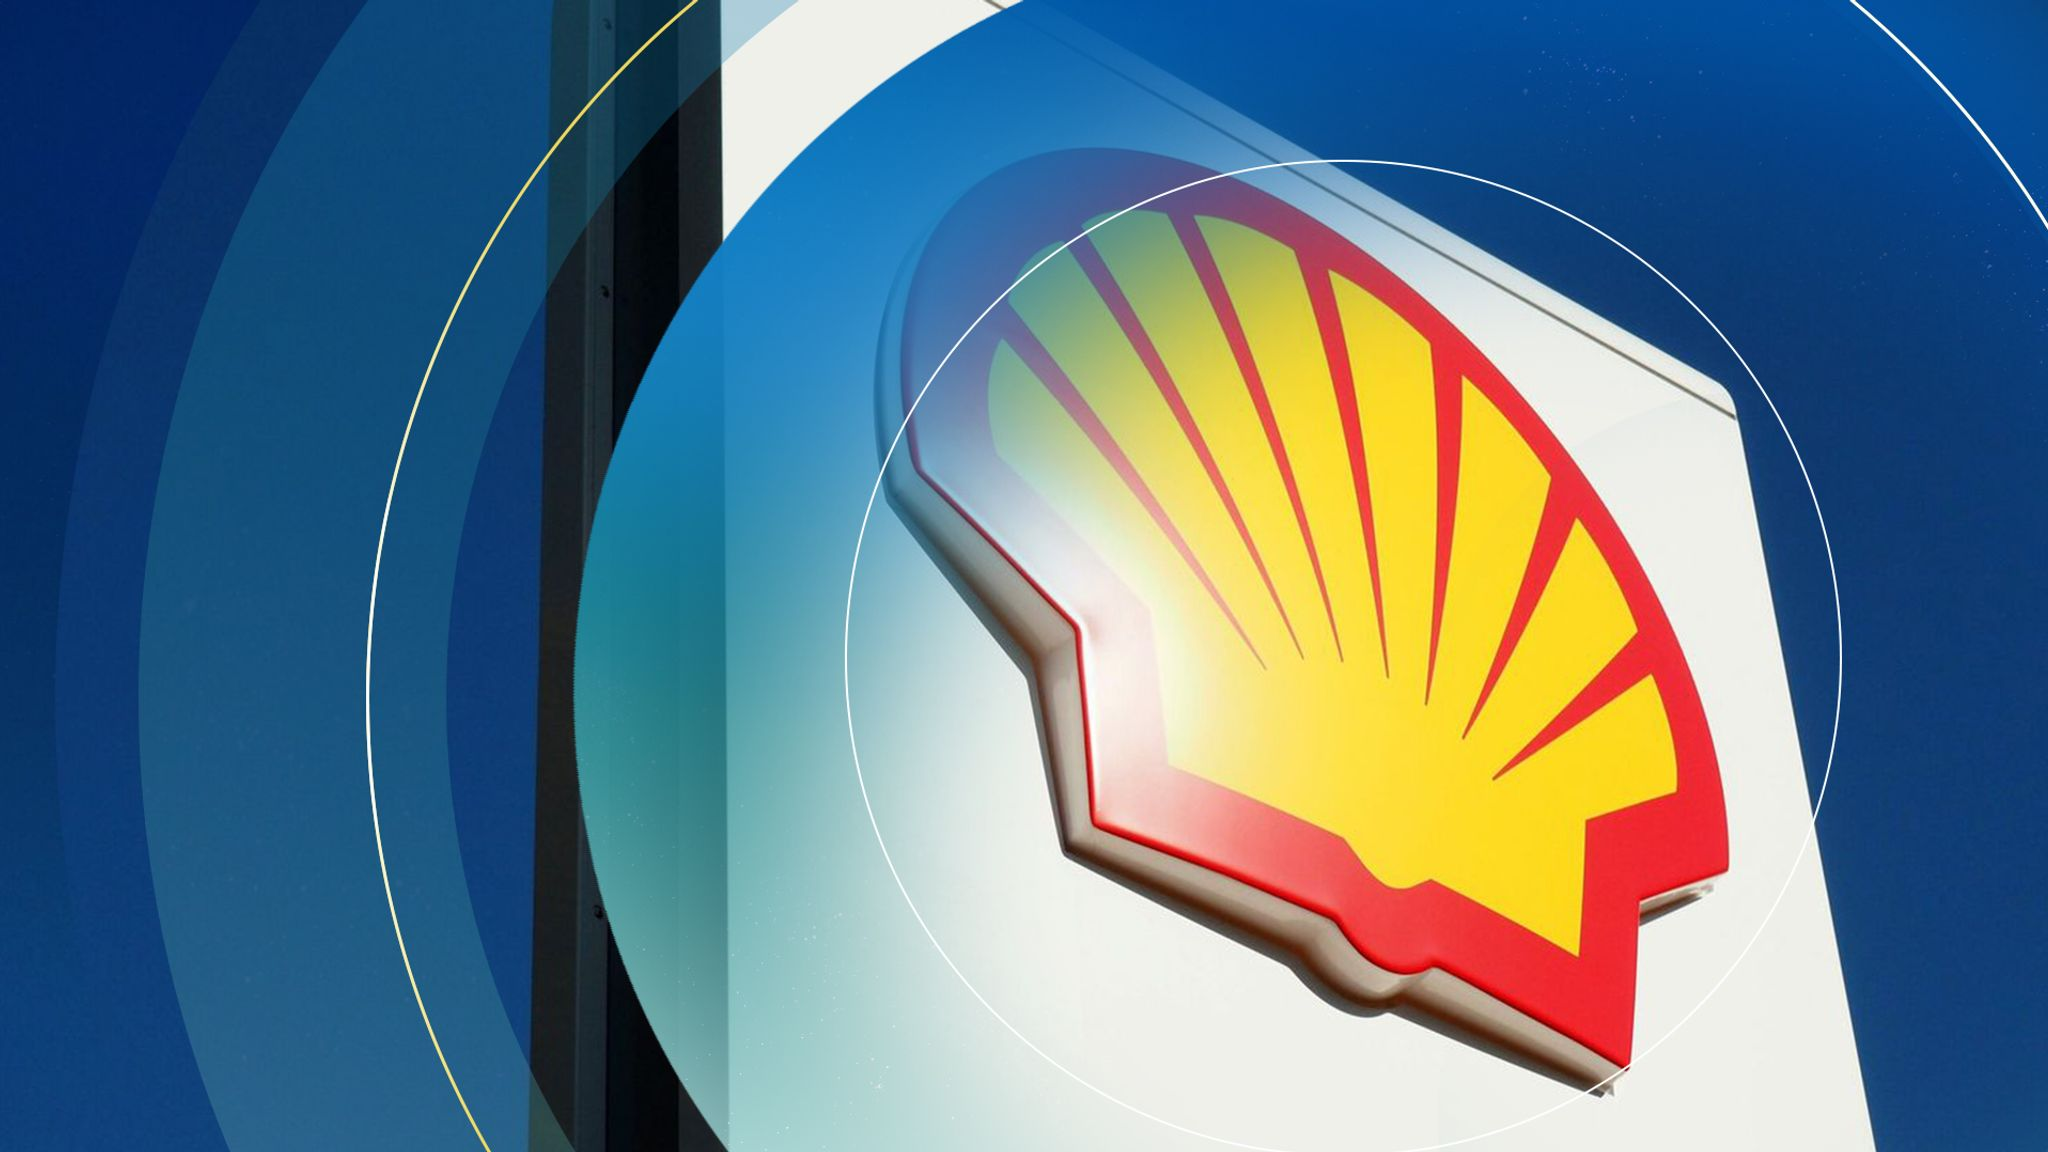 It's too soon to say whether court ruling will force Shell to slash carbon emissions - but case could still set a precedent